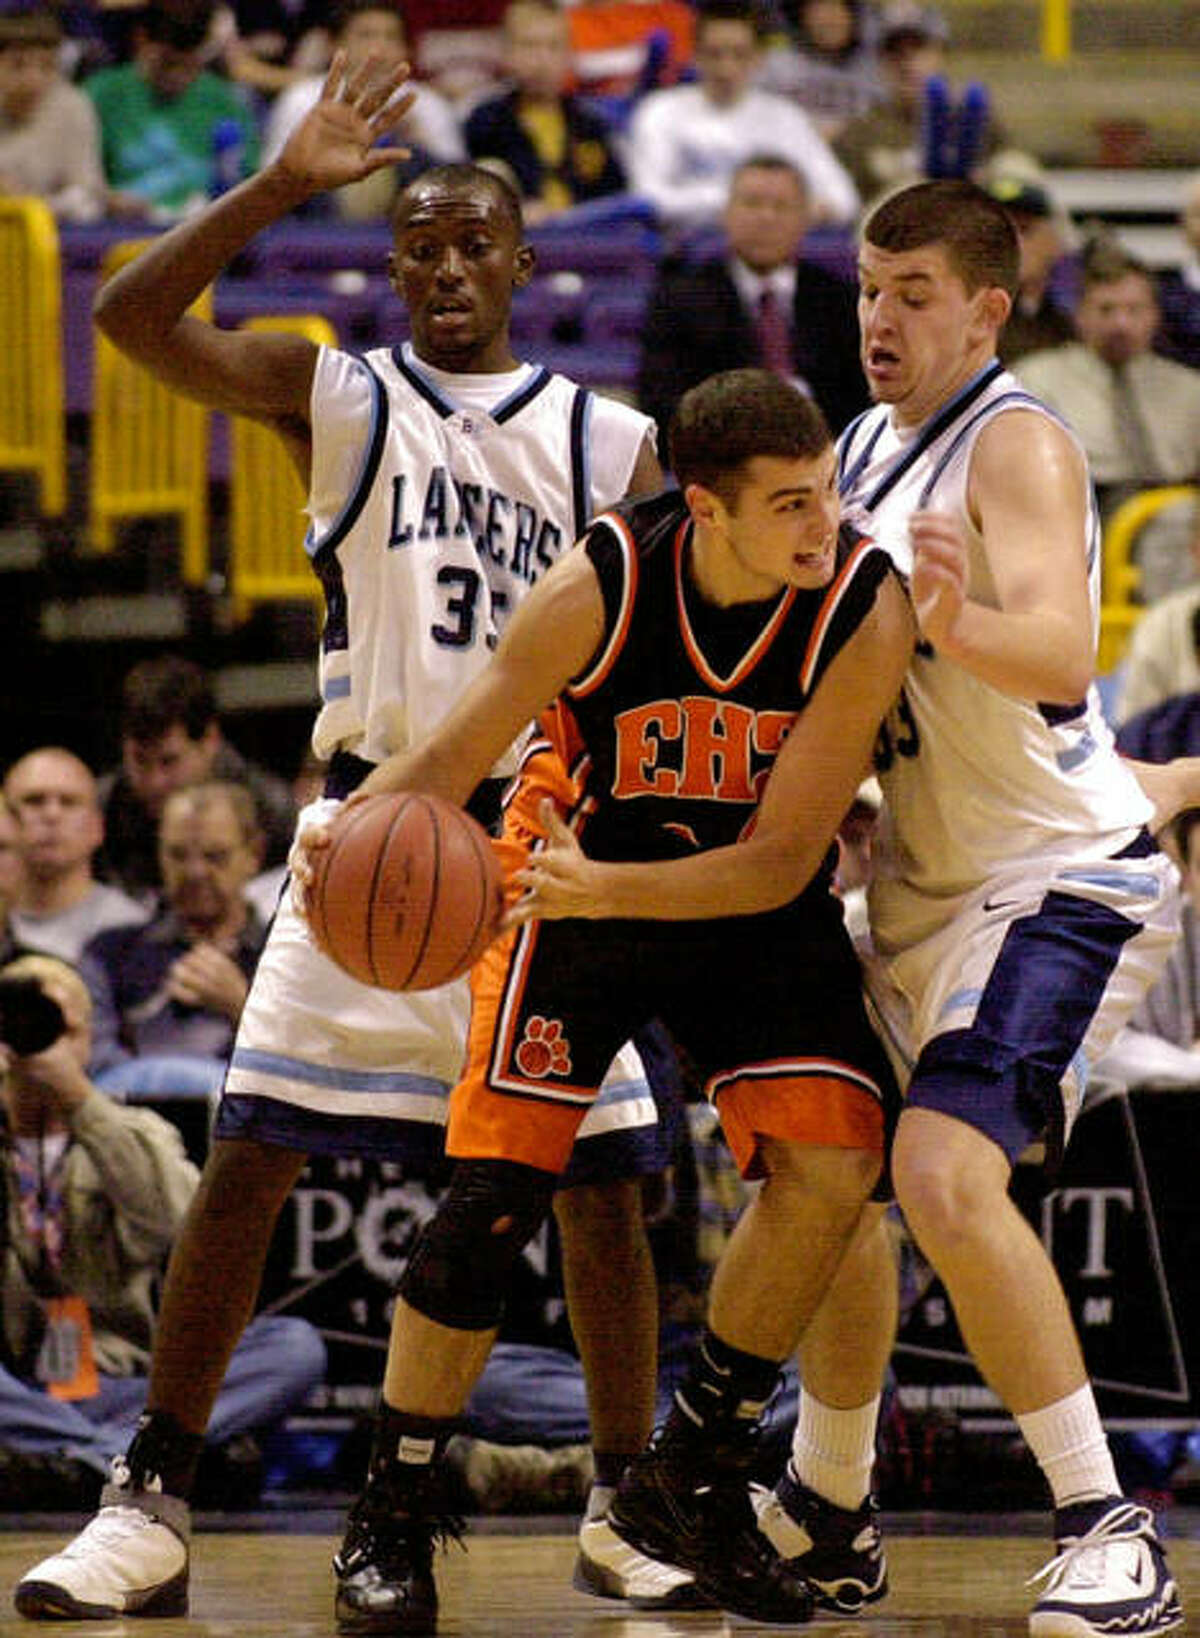 Edwardsville's Dustin Maguire passes around Belleville (Ill.) East's Marty McCoy, left, and Eric McCrary, right, at the annual High School Shootout, Wednesday, Dec. 7, 2005, in St. Louis.